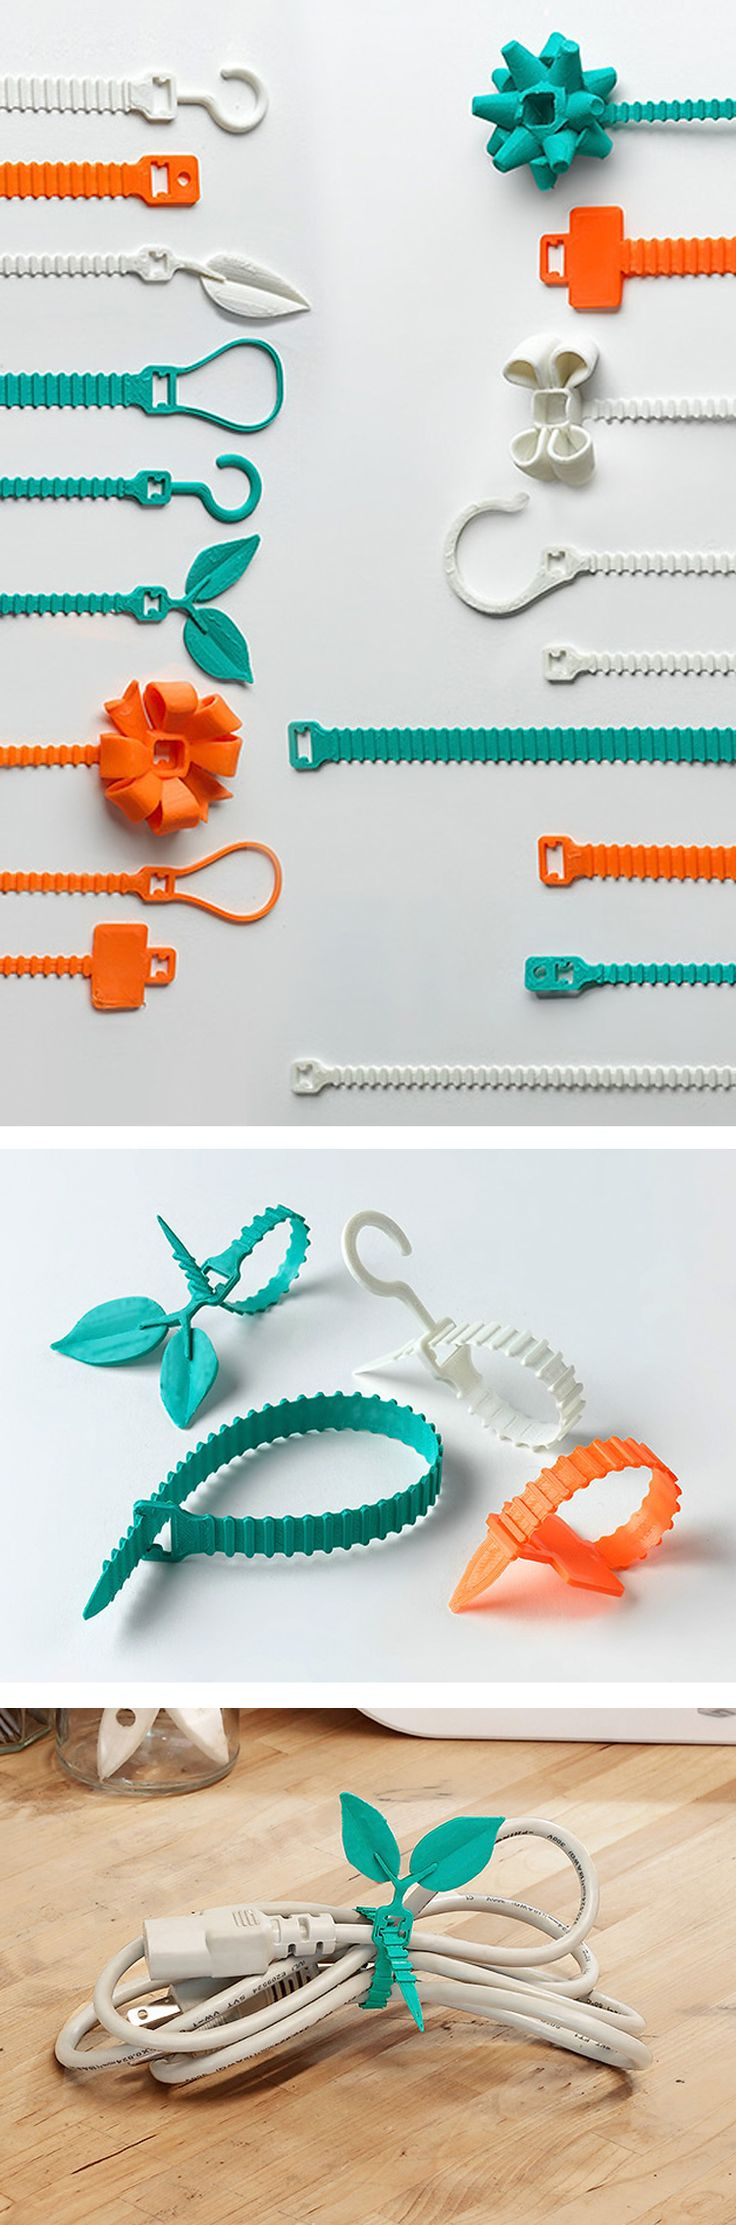 3D Printed Cable Ties by Matthijs Kok for Cubify